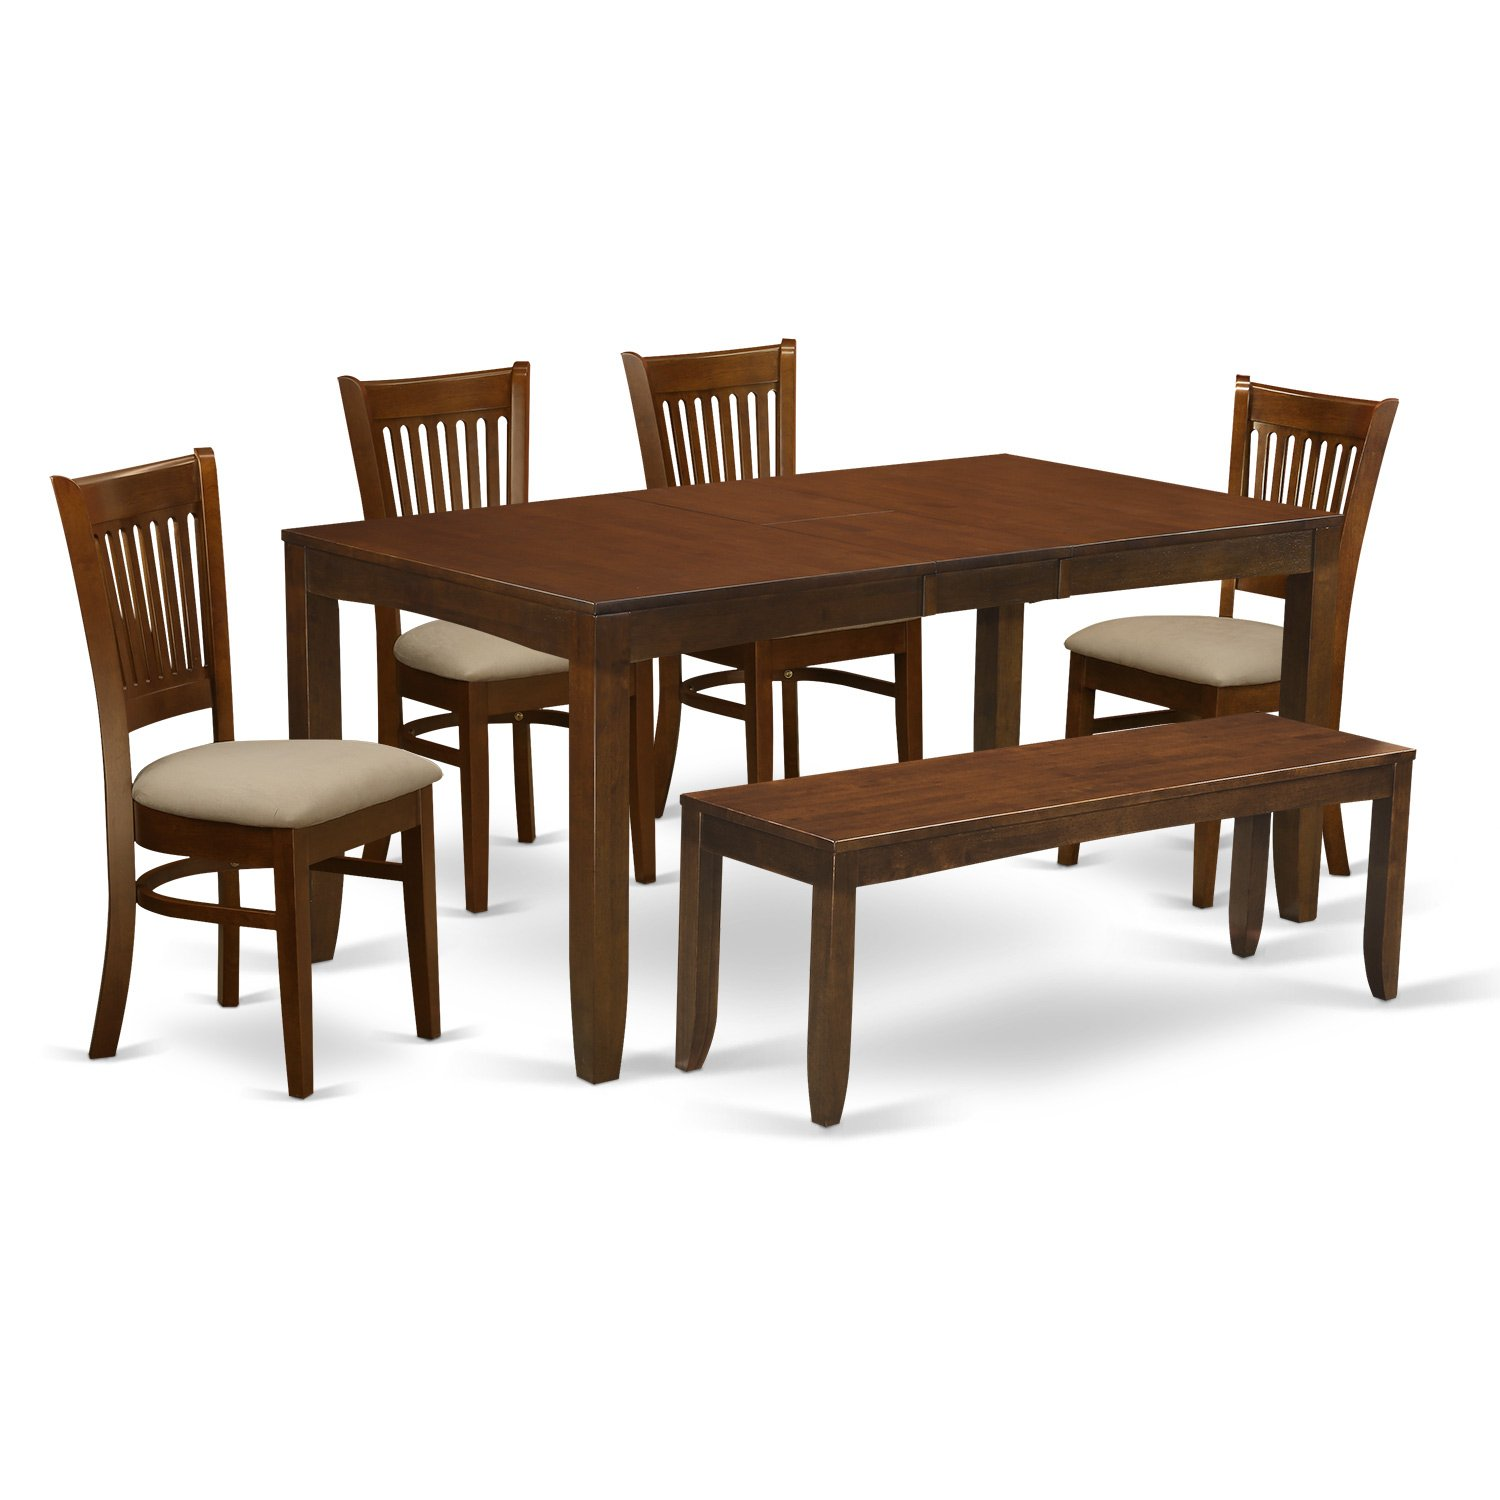 LYVA6-ESP-C 6 Pc set Dining Table with a 12in Leaf and 4 Padded Dinette Chairs Plus Bench